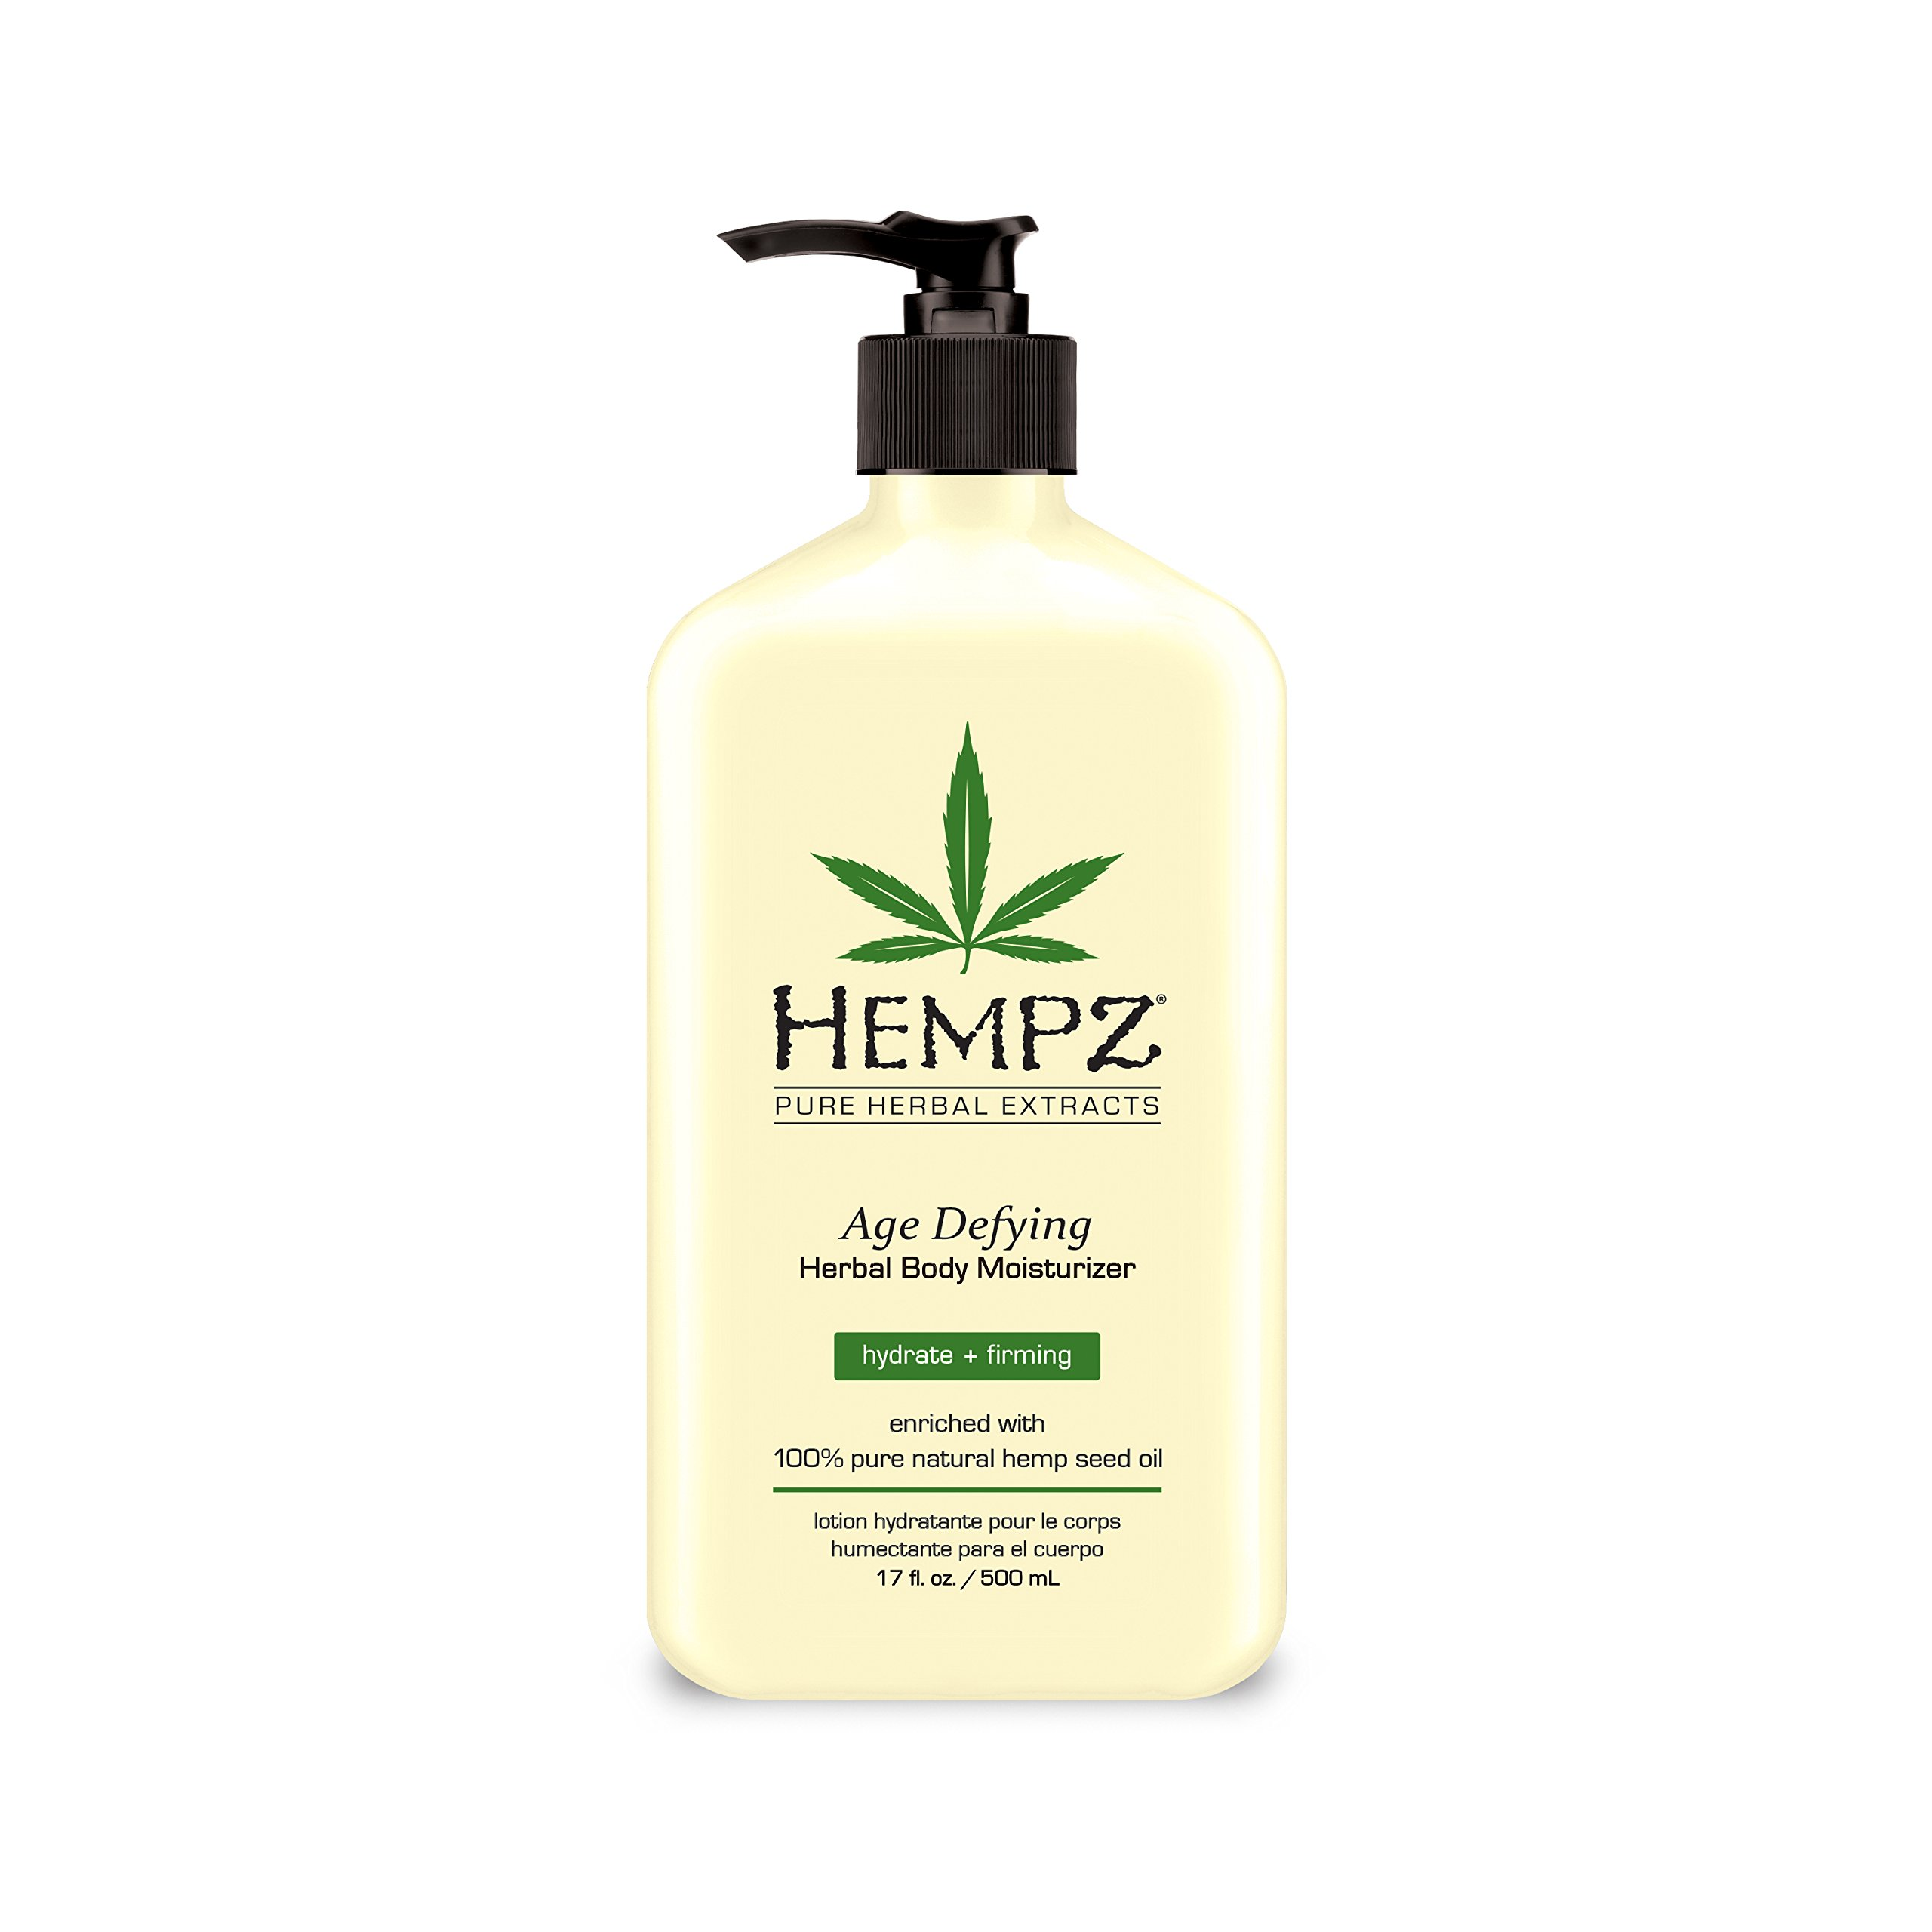 Hempz Defying Herbal Moisturizer Fluid